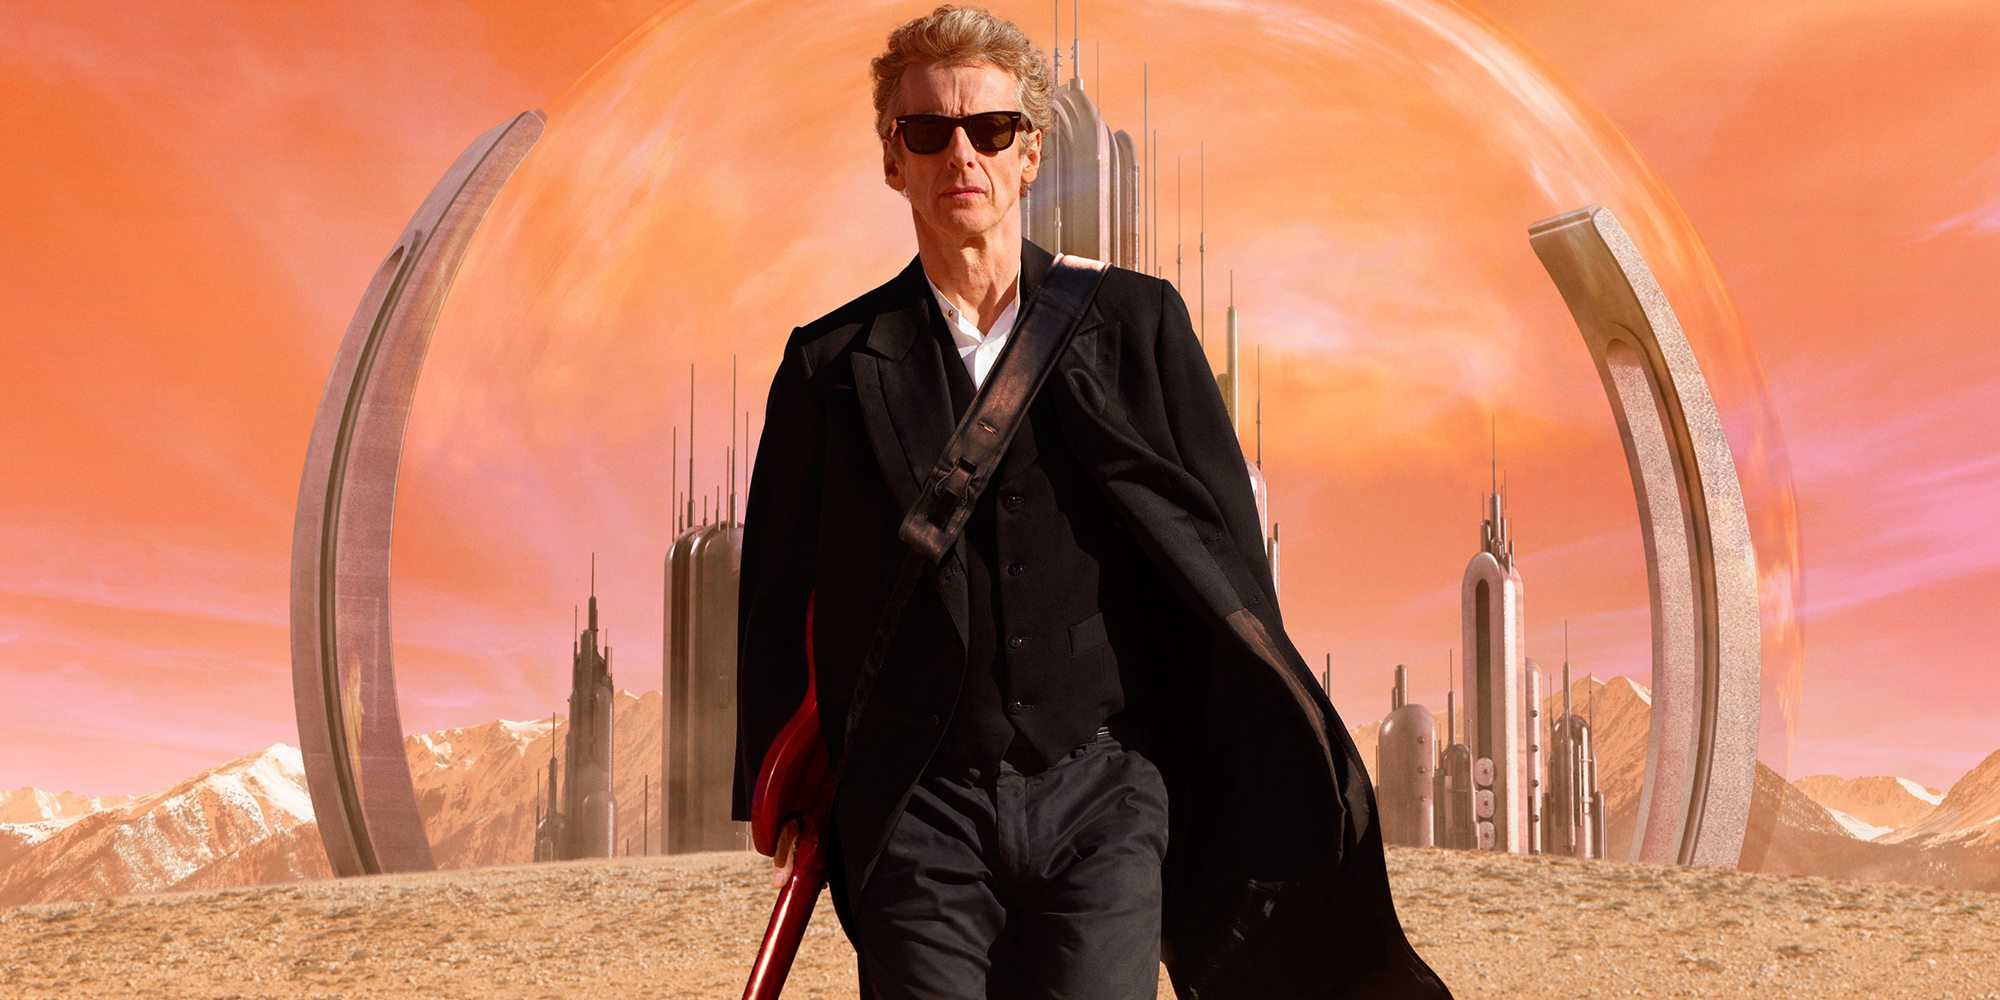 'Doctor Who' – The More Changes, The More It Stays the Same